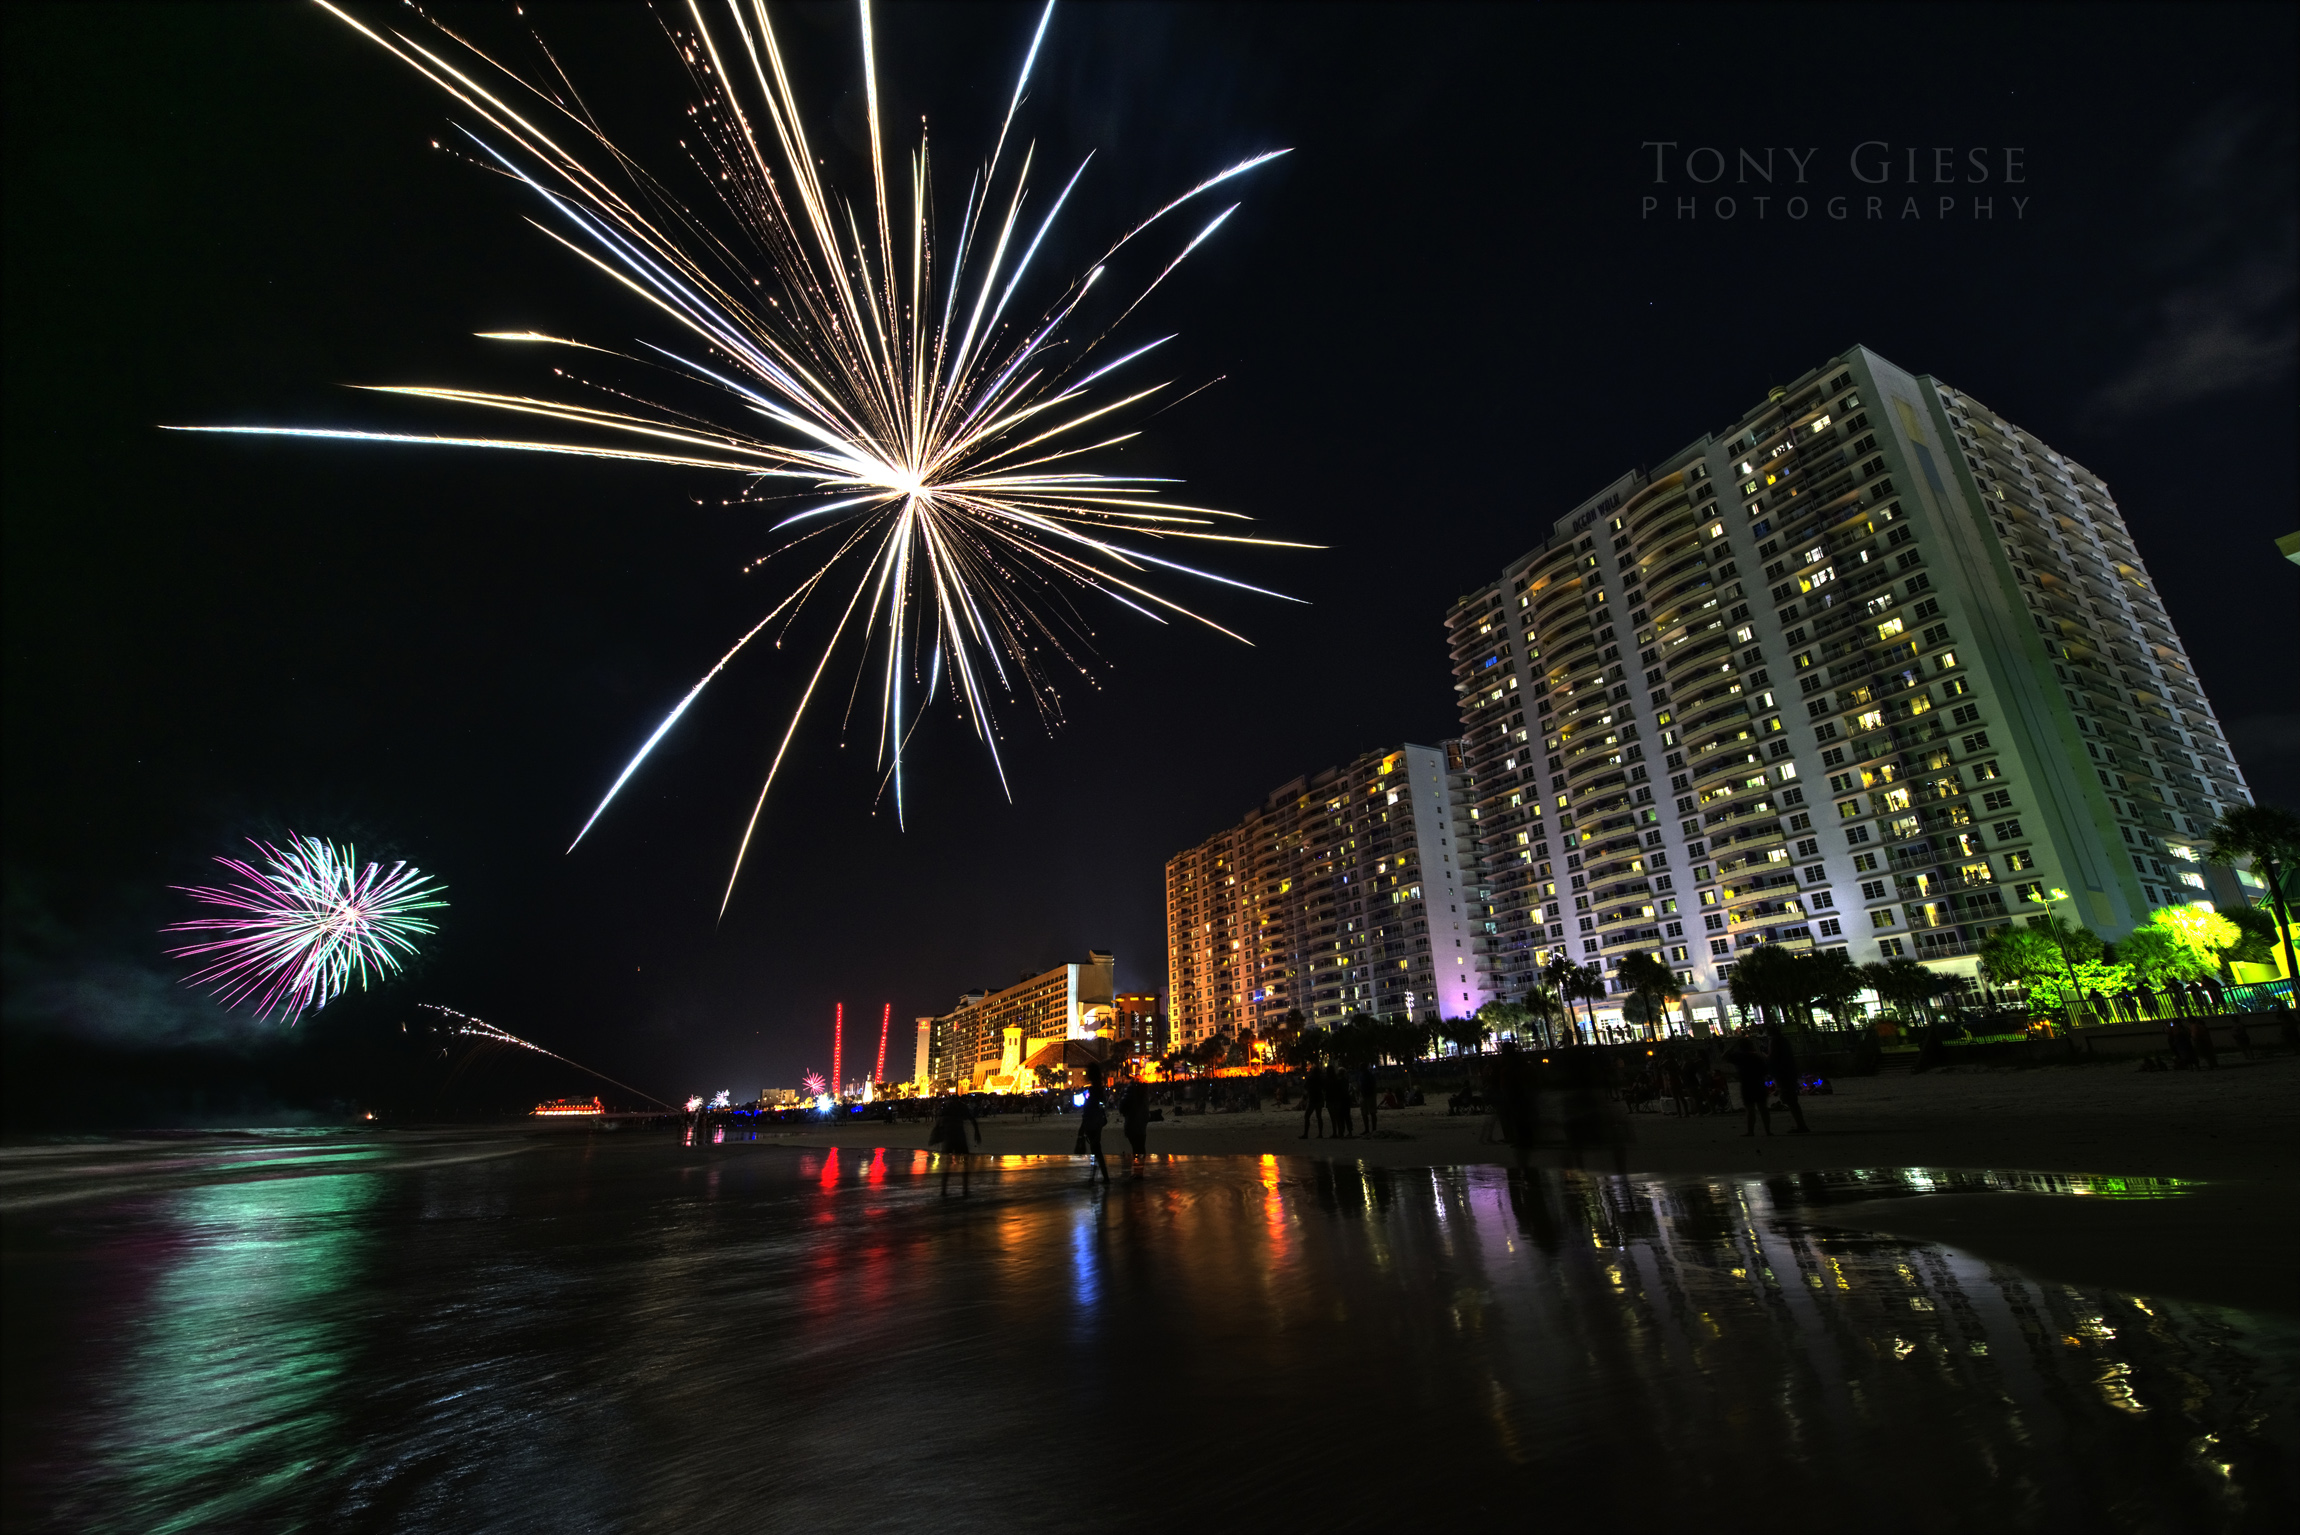 Wyndham Ocean Walk resort with fireworks on Daytona Beach, Florida.